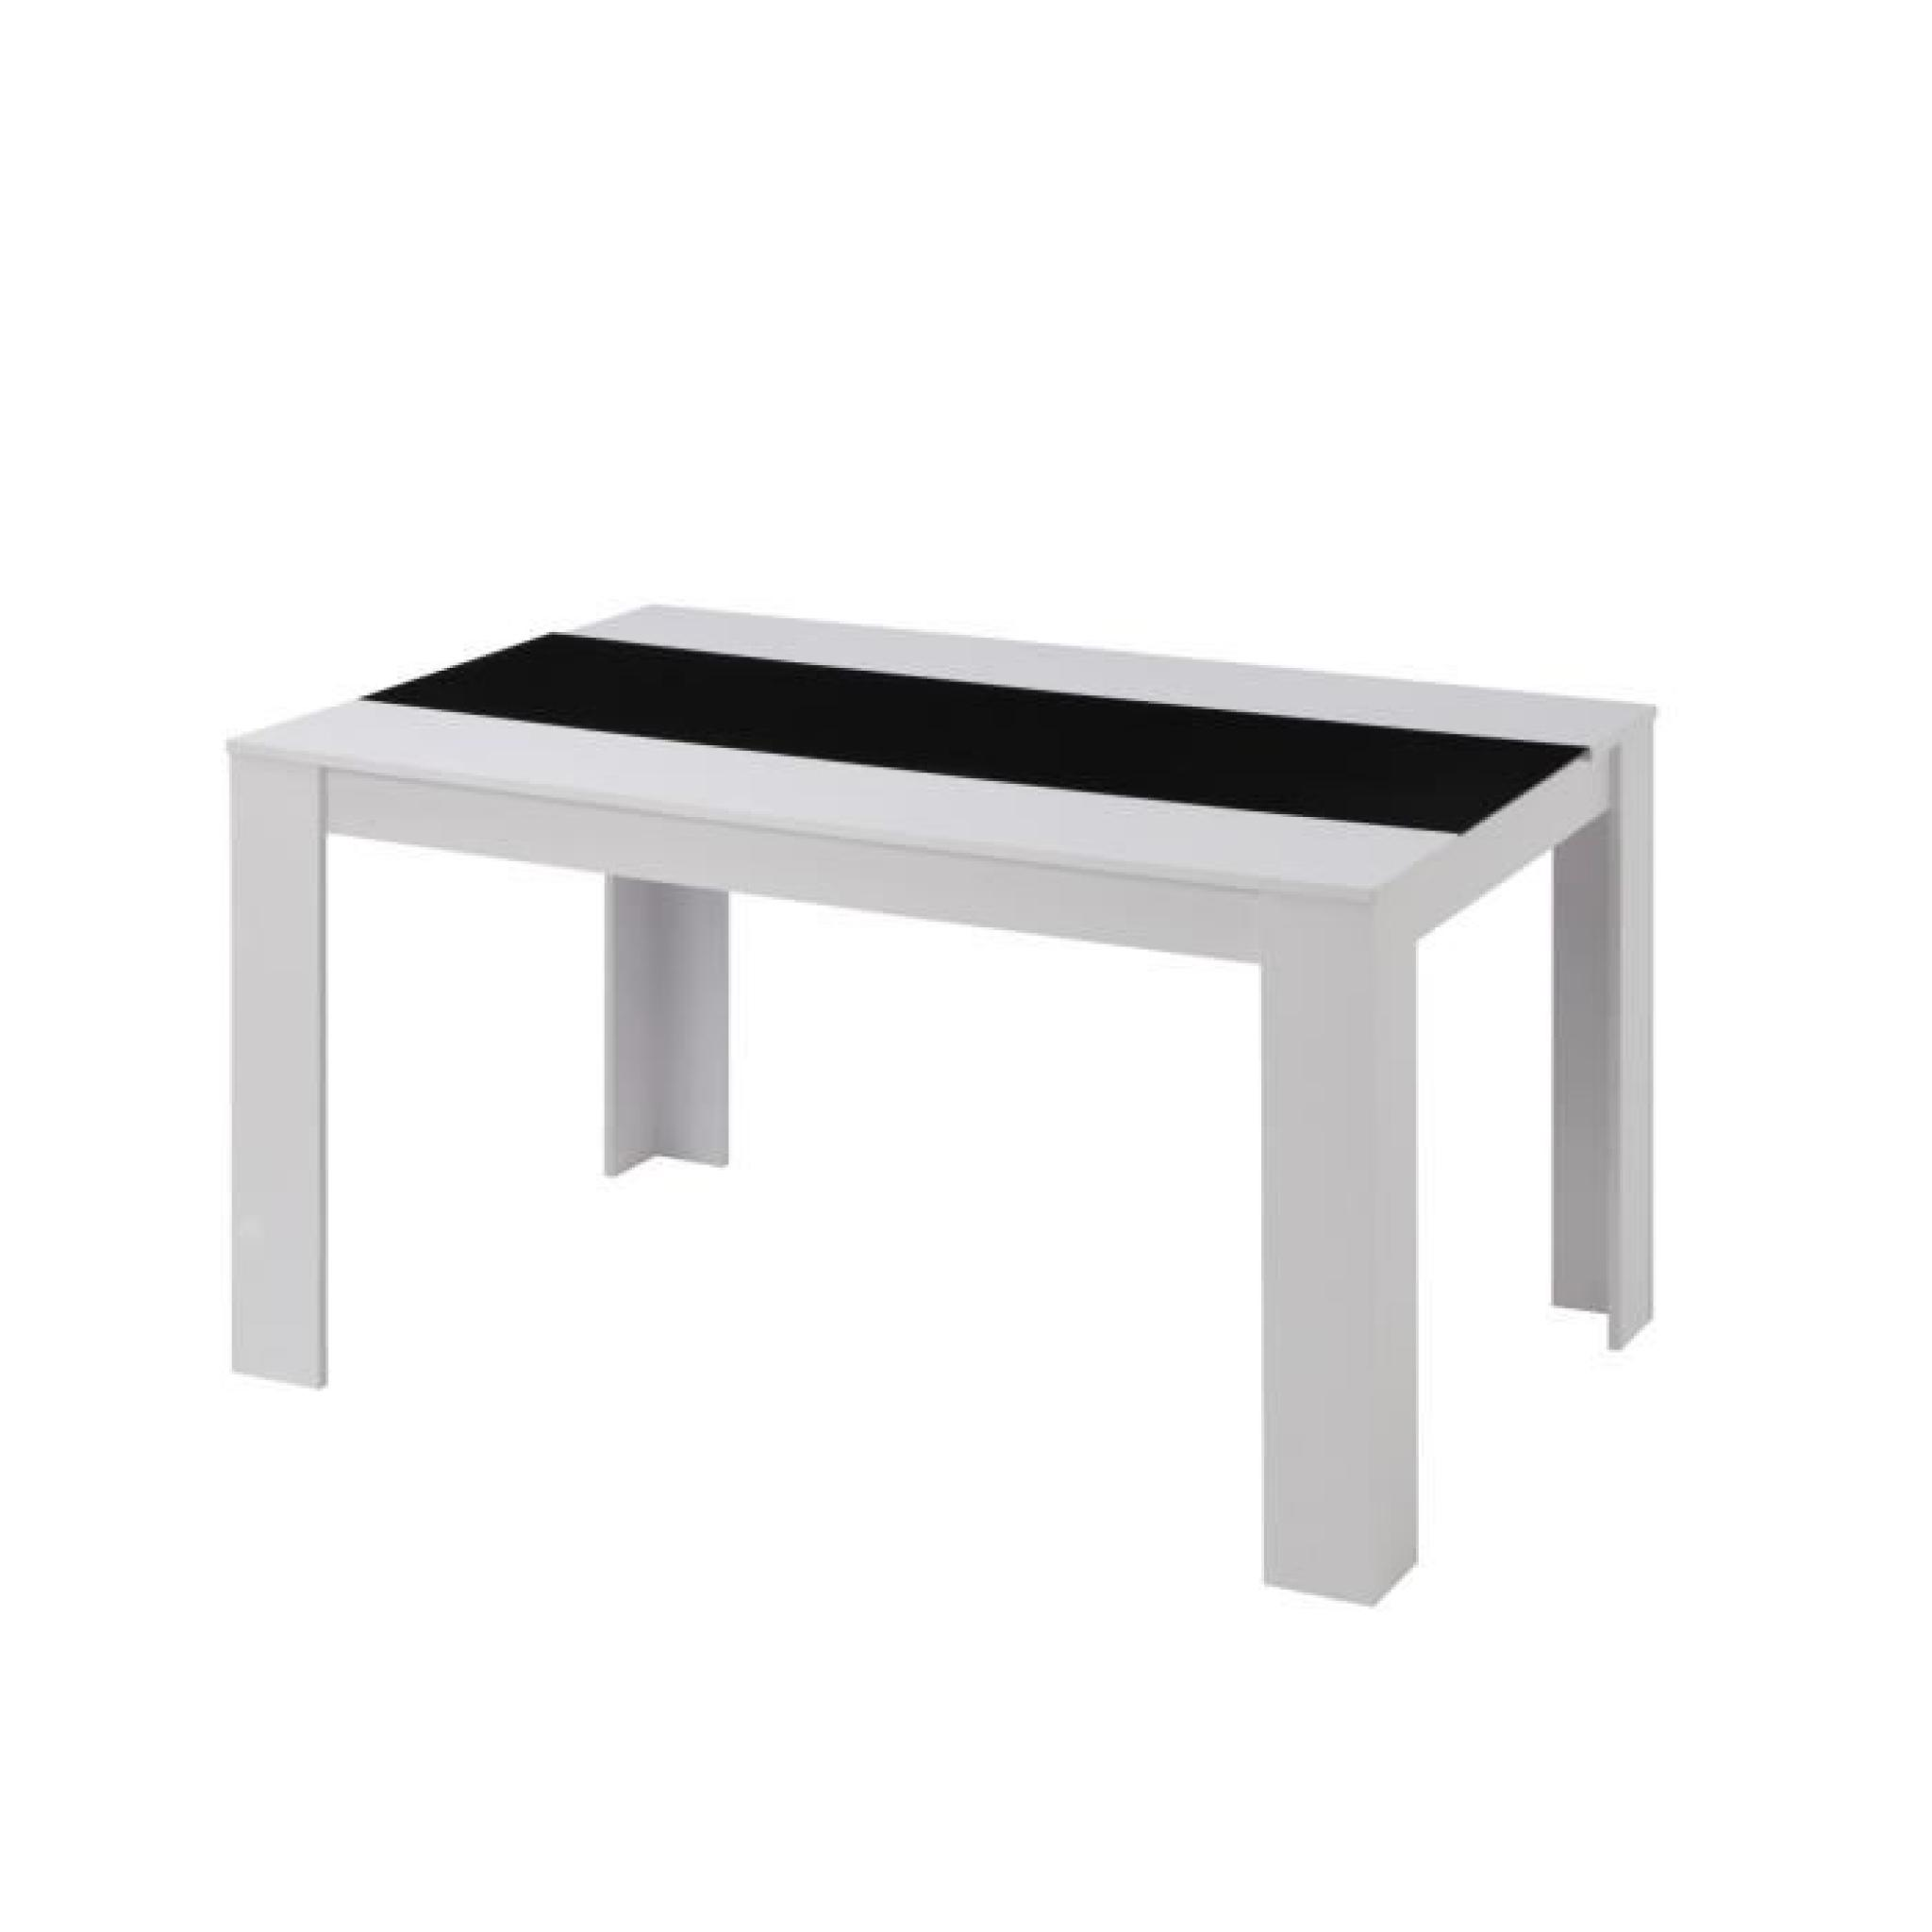 Damia table manger 140x90cm noir et blanc achat vente for Table de salon a manger